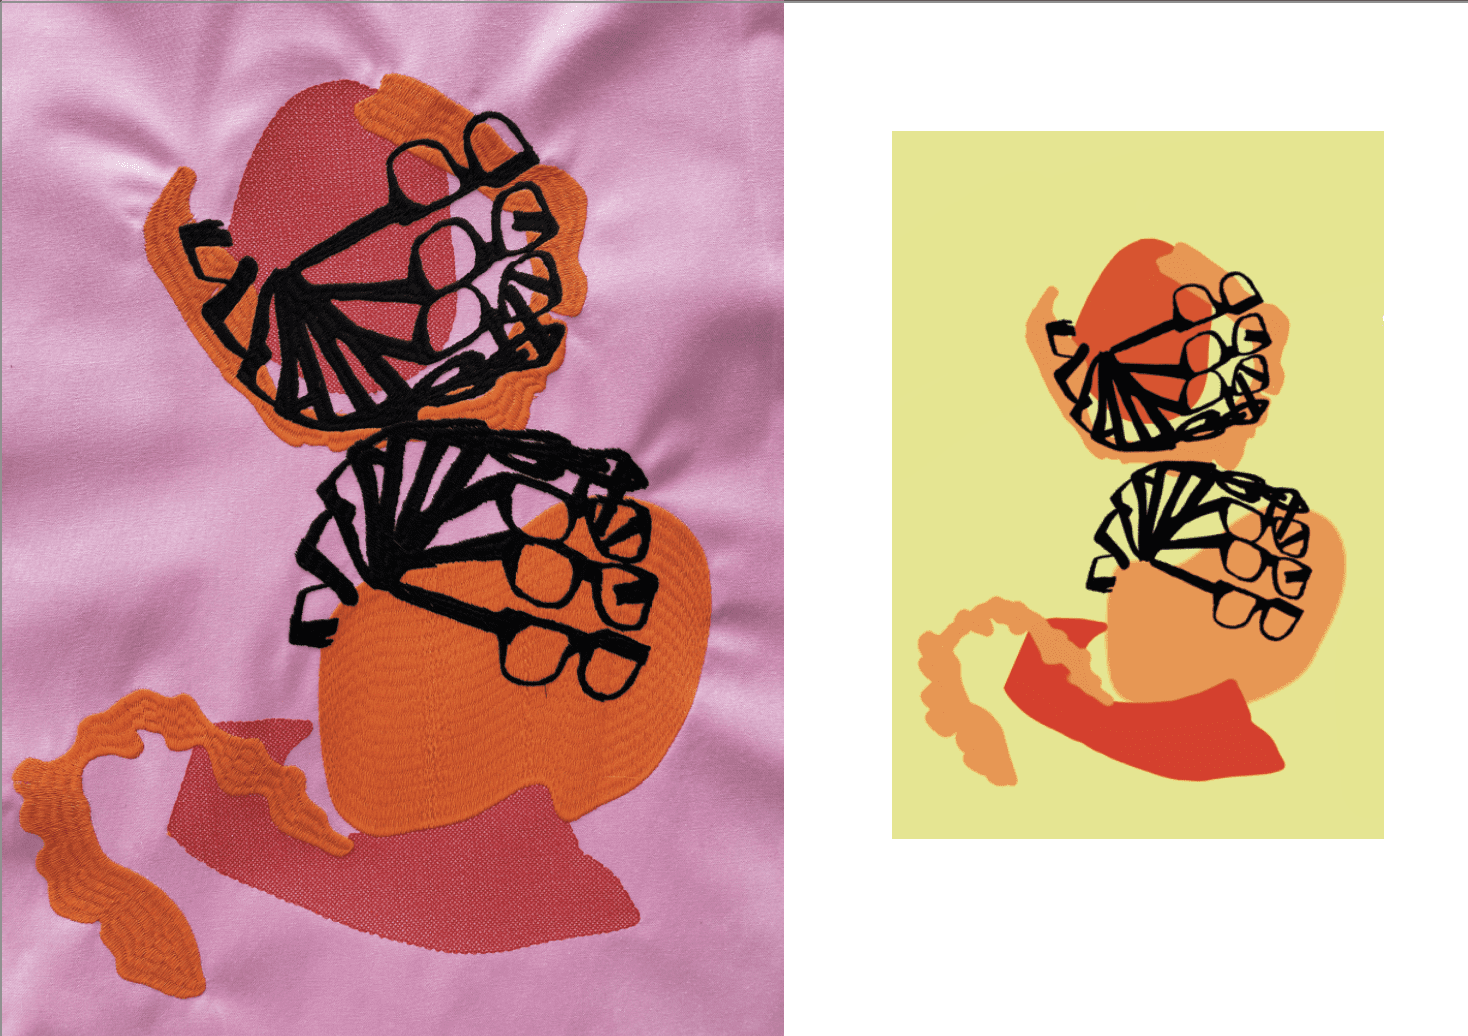 Leigh bowery inspired print and digital embroidery